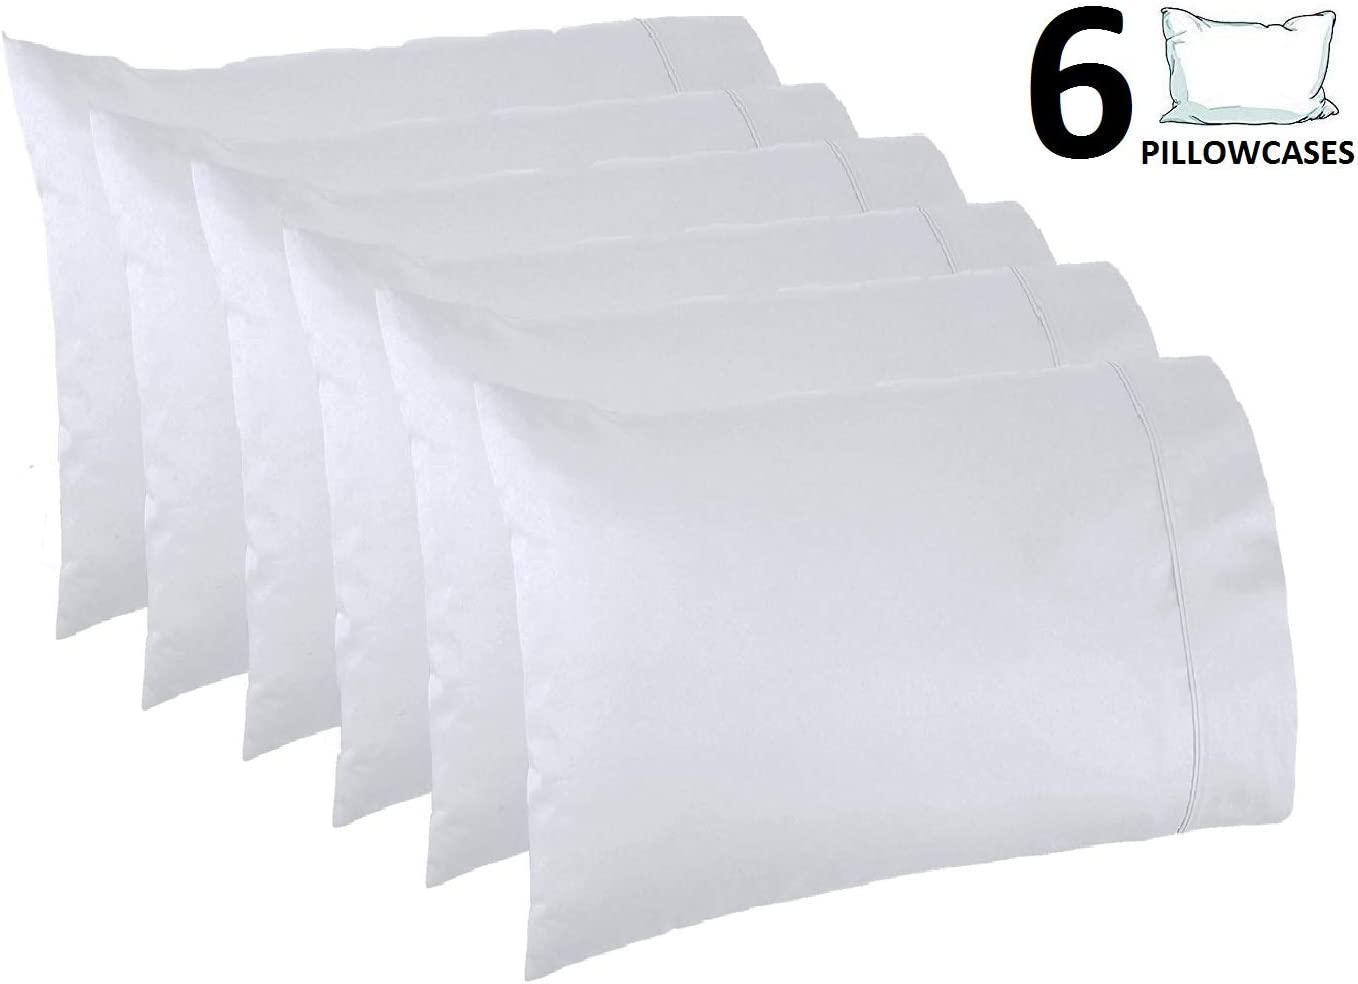 Lasimonne White Pillowcases,Pack of 6, Standard Size, 200 Thread Count Percale, CVC Pillow Cover